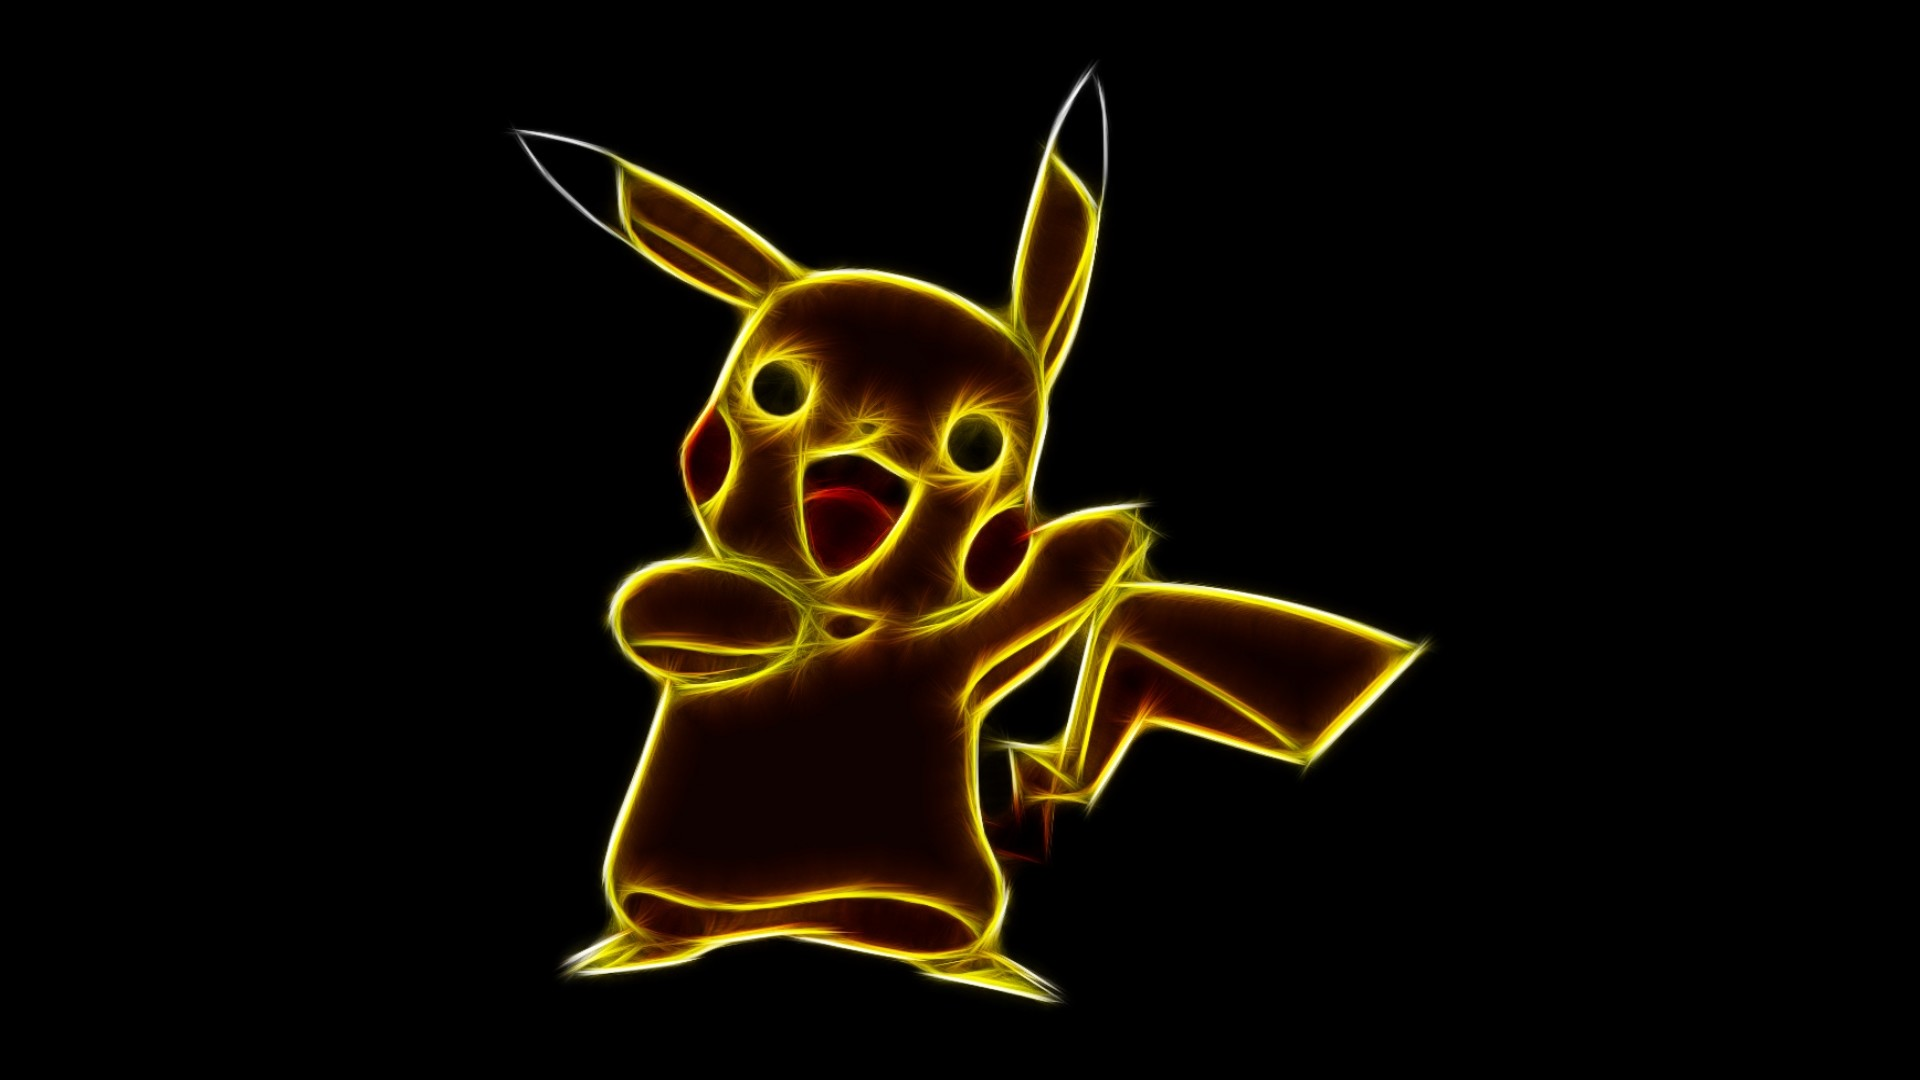 1920x1080 Scree Images Free Download Pikachu Backgrounds.